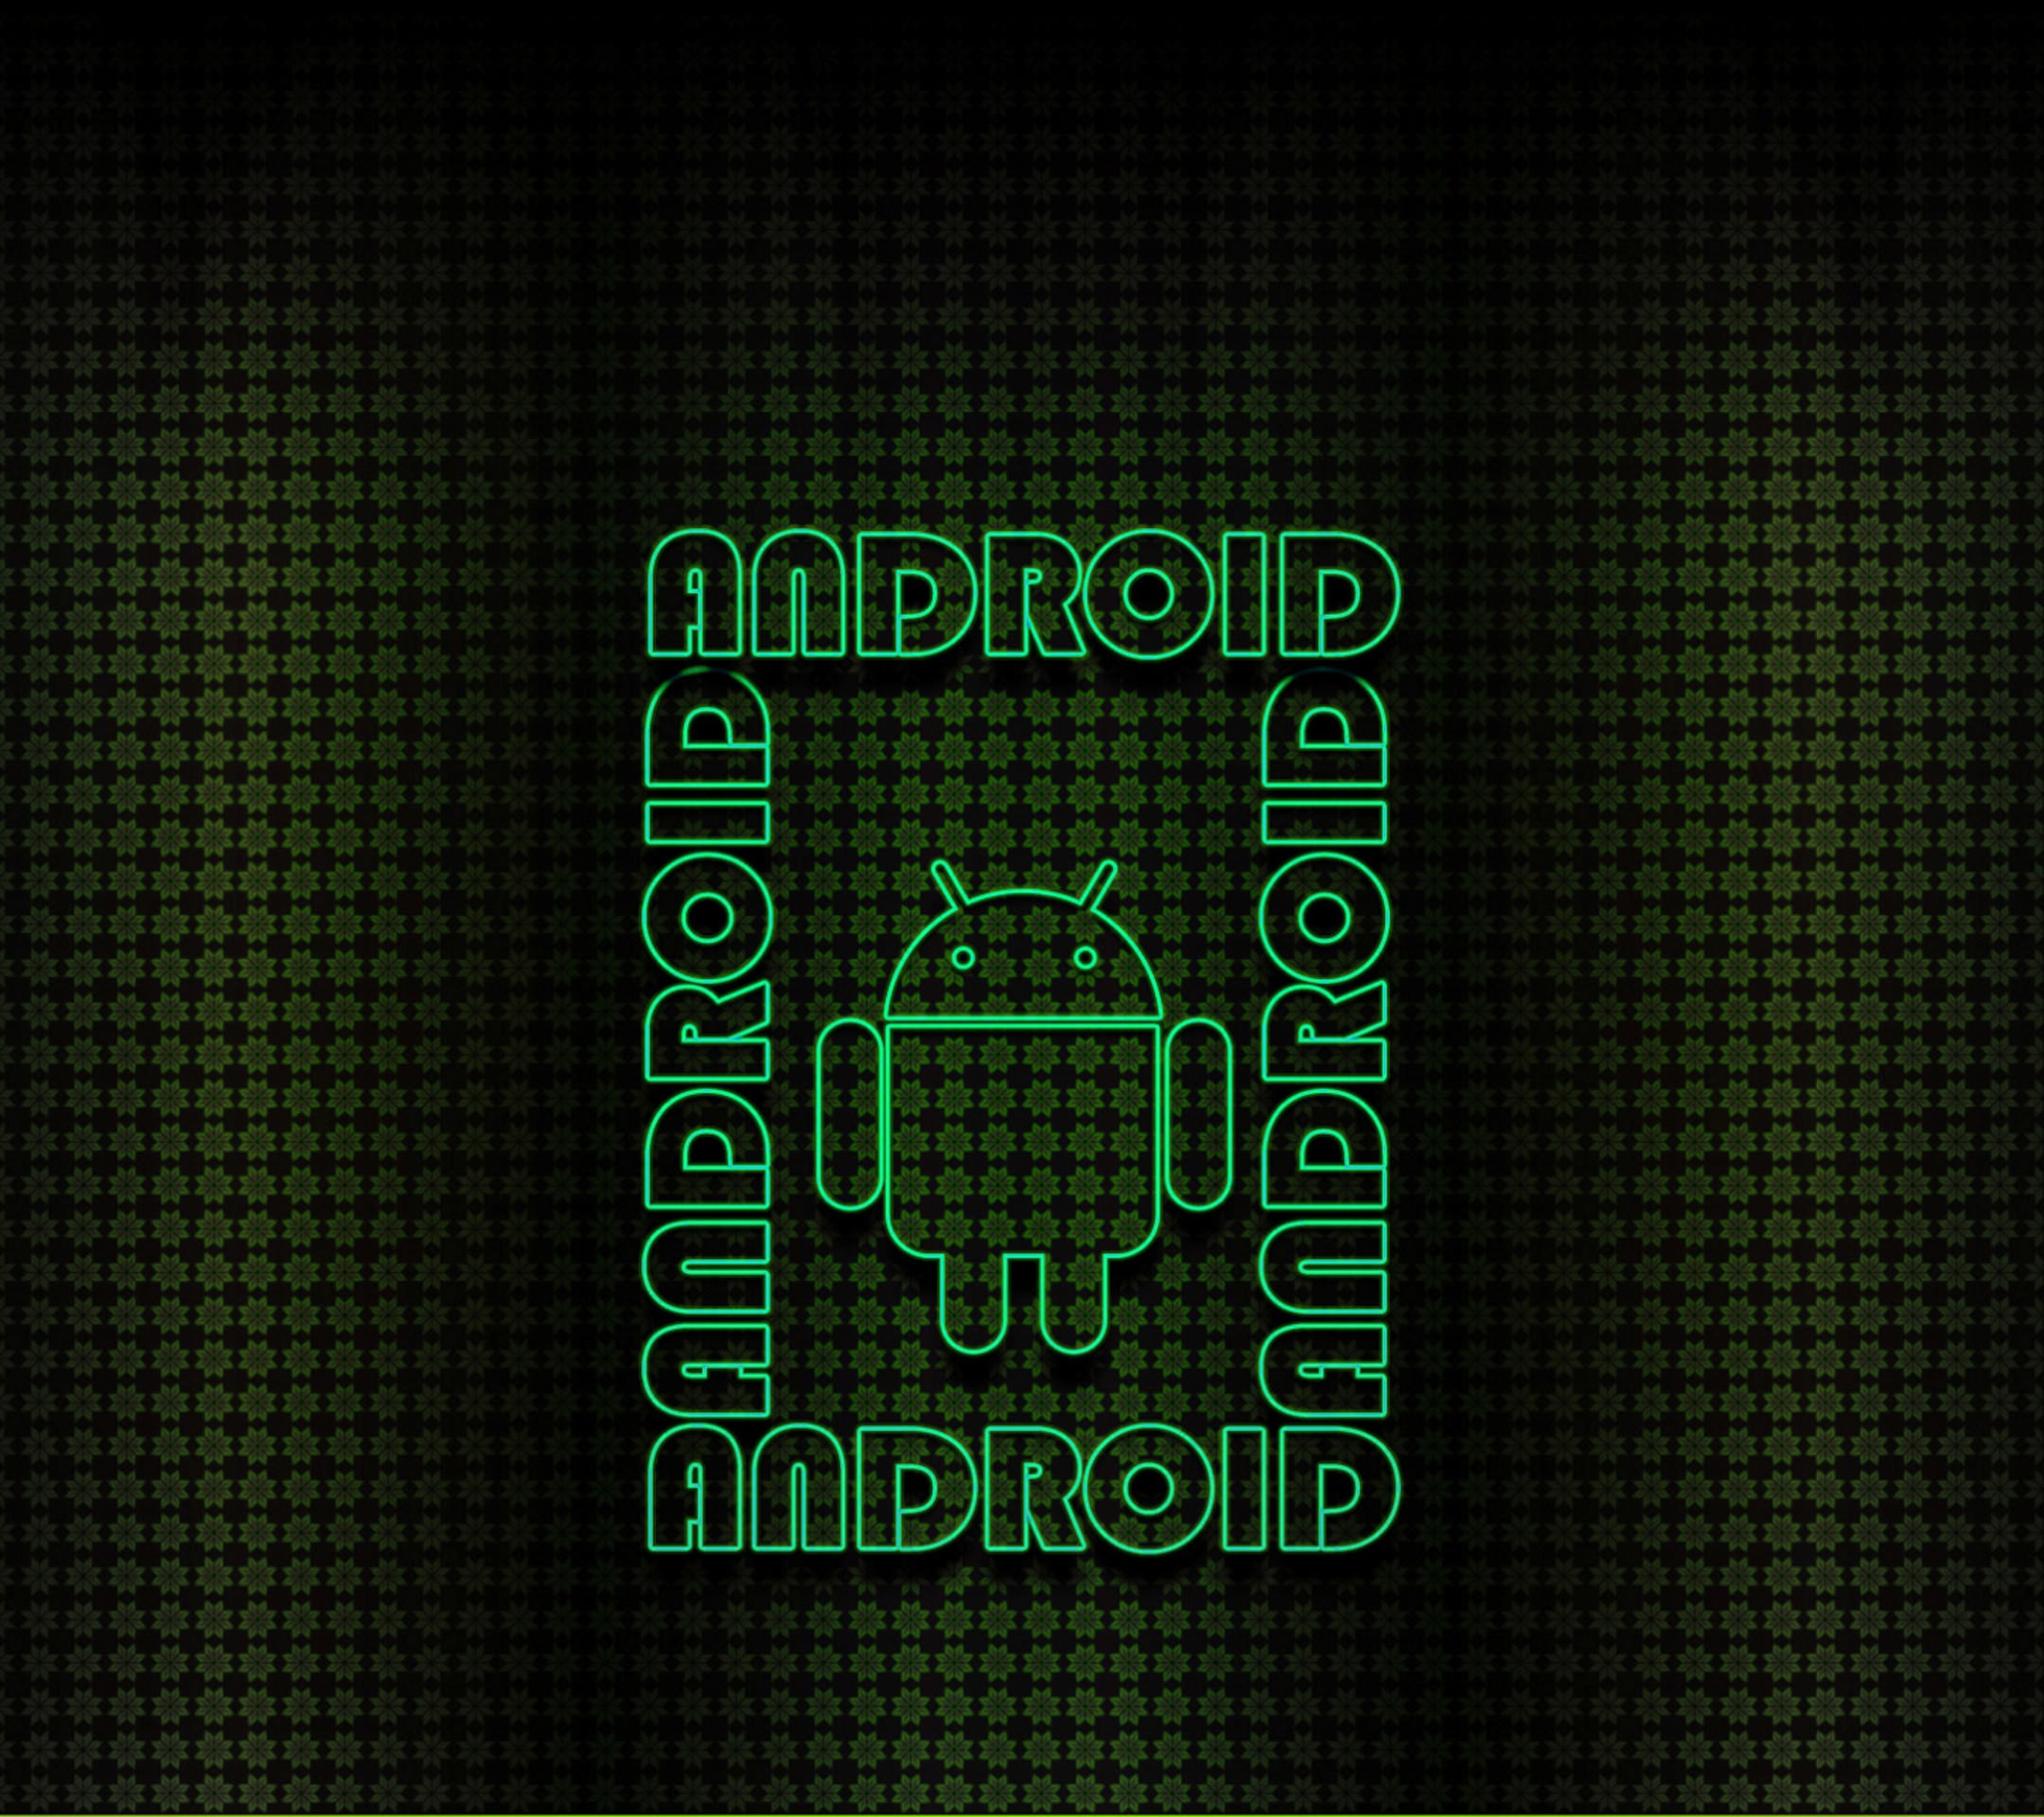 Android Smart Phone Wallpaper